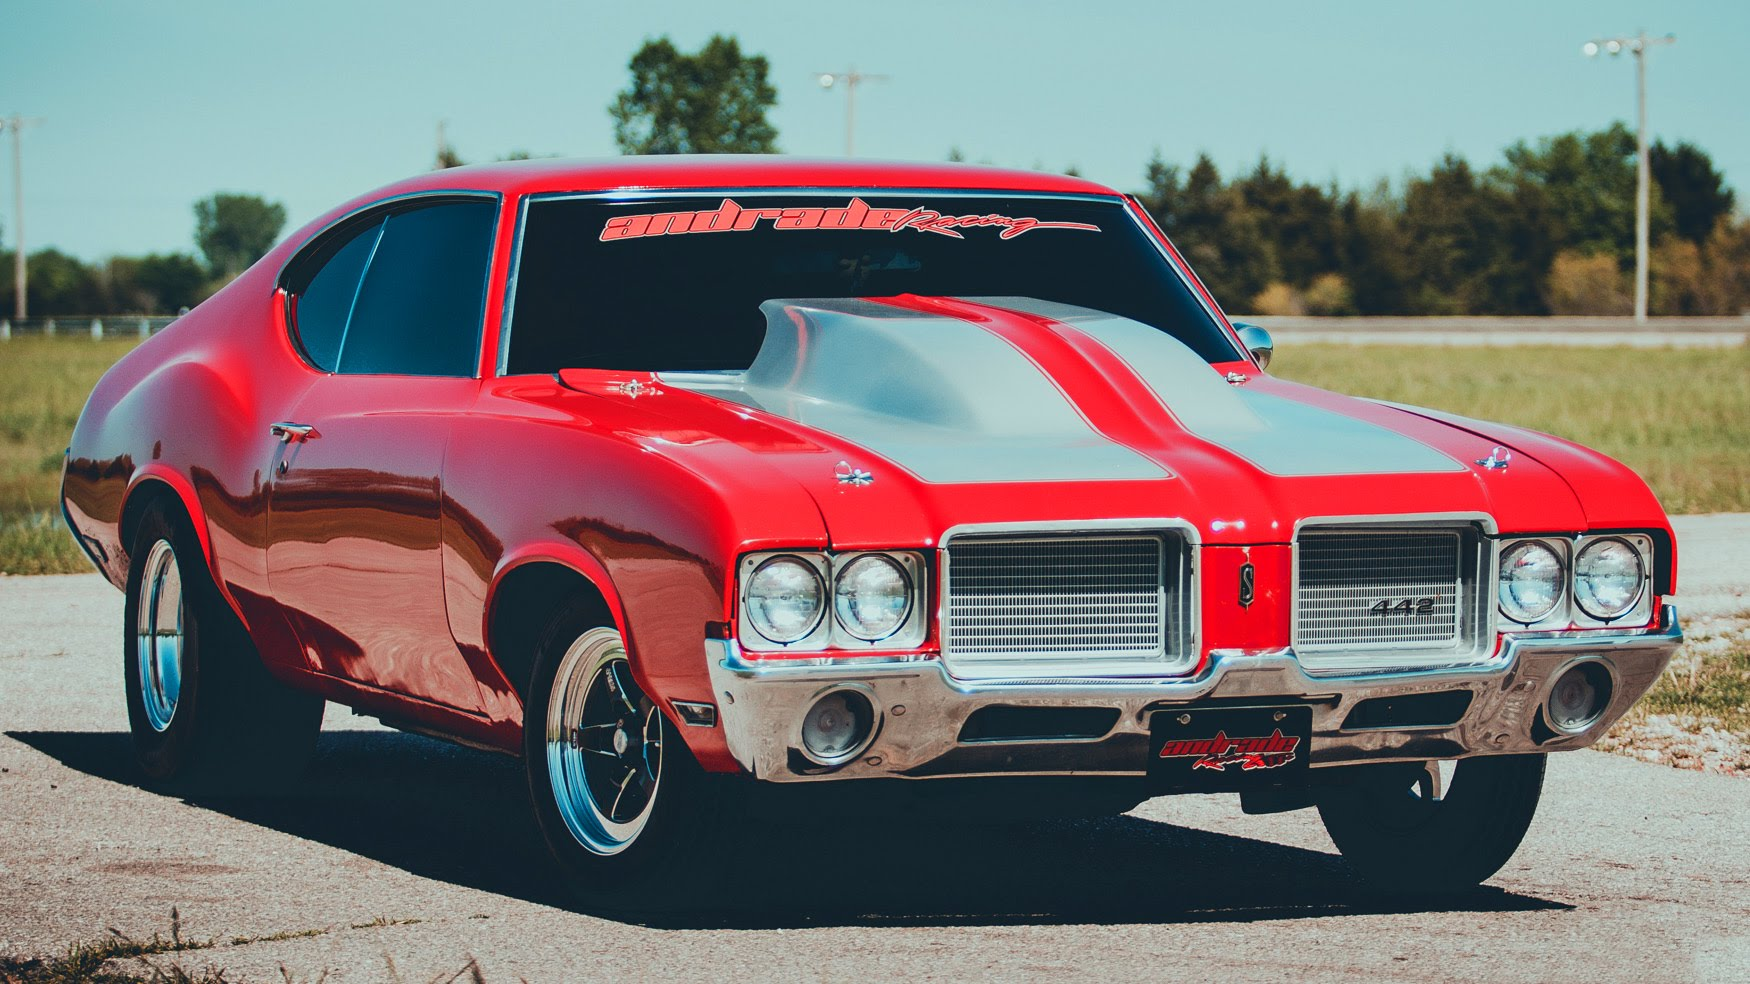 Muscle Cars Archives - Page 6 of 76 - LegendaryFinds